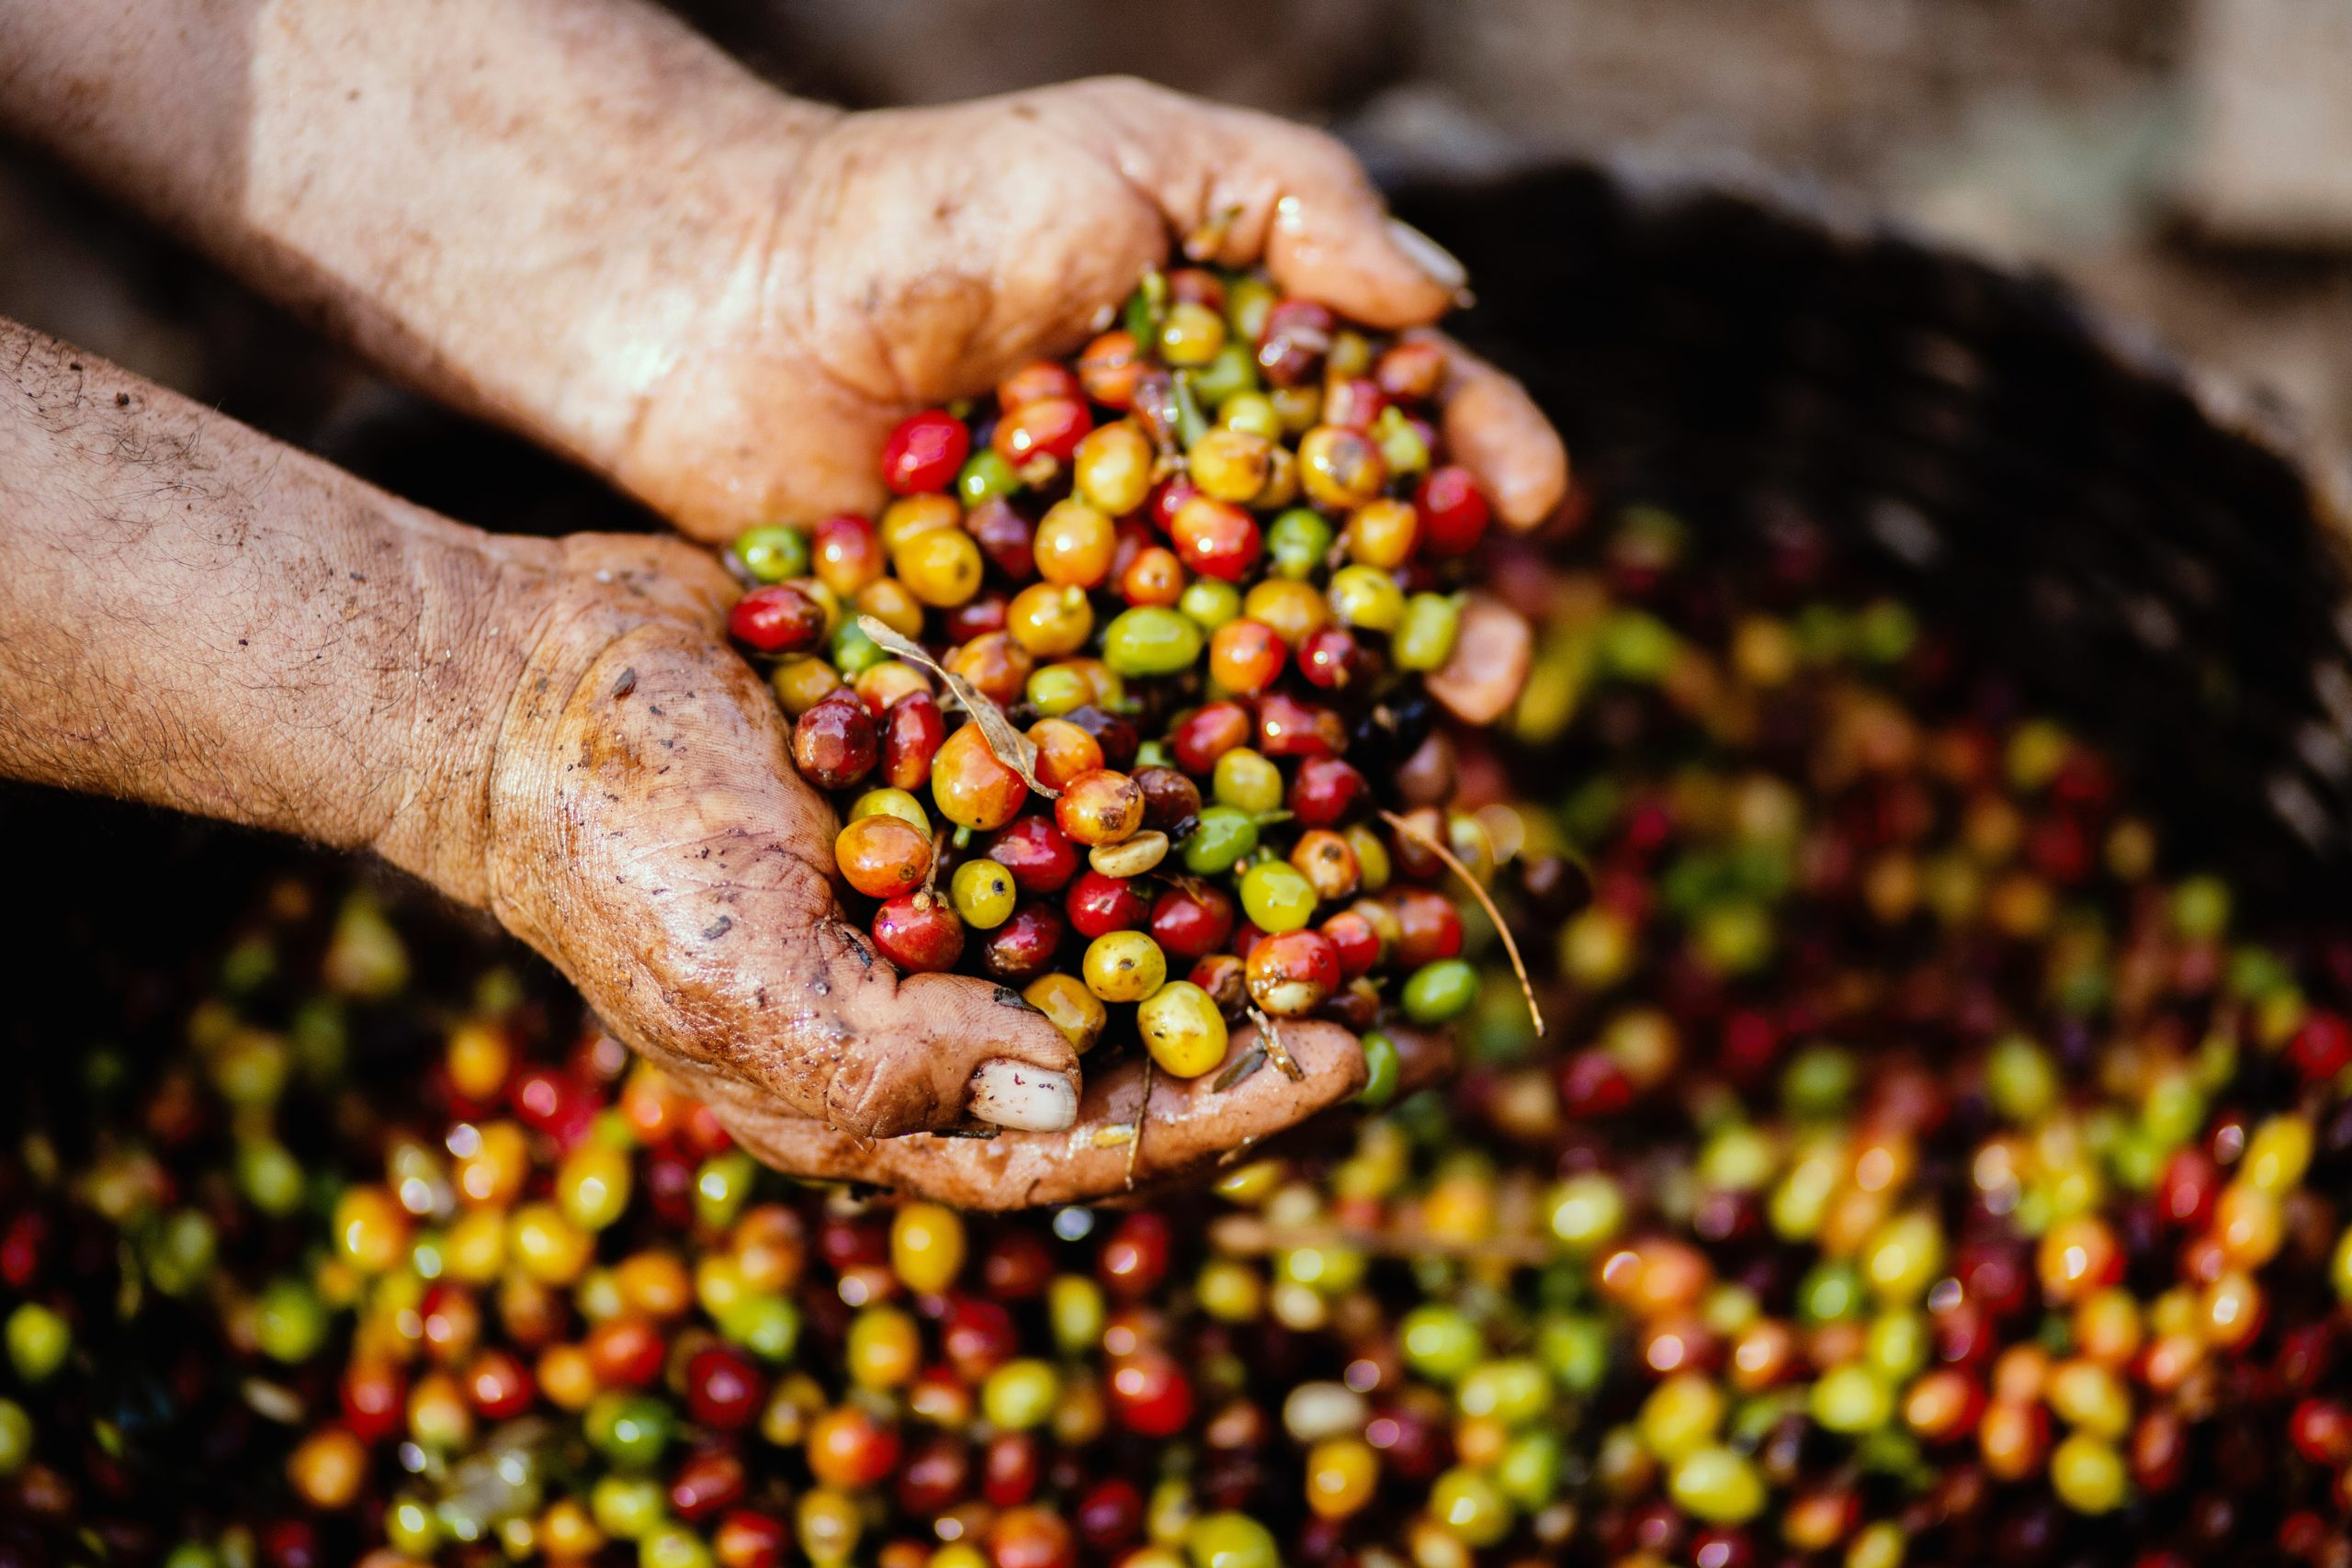 a person picking up a bunch of coffee cherries using his palms